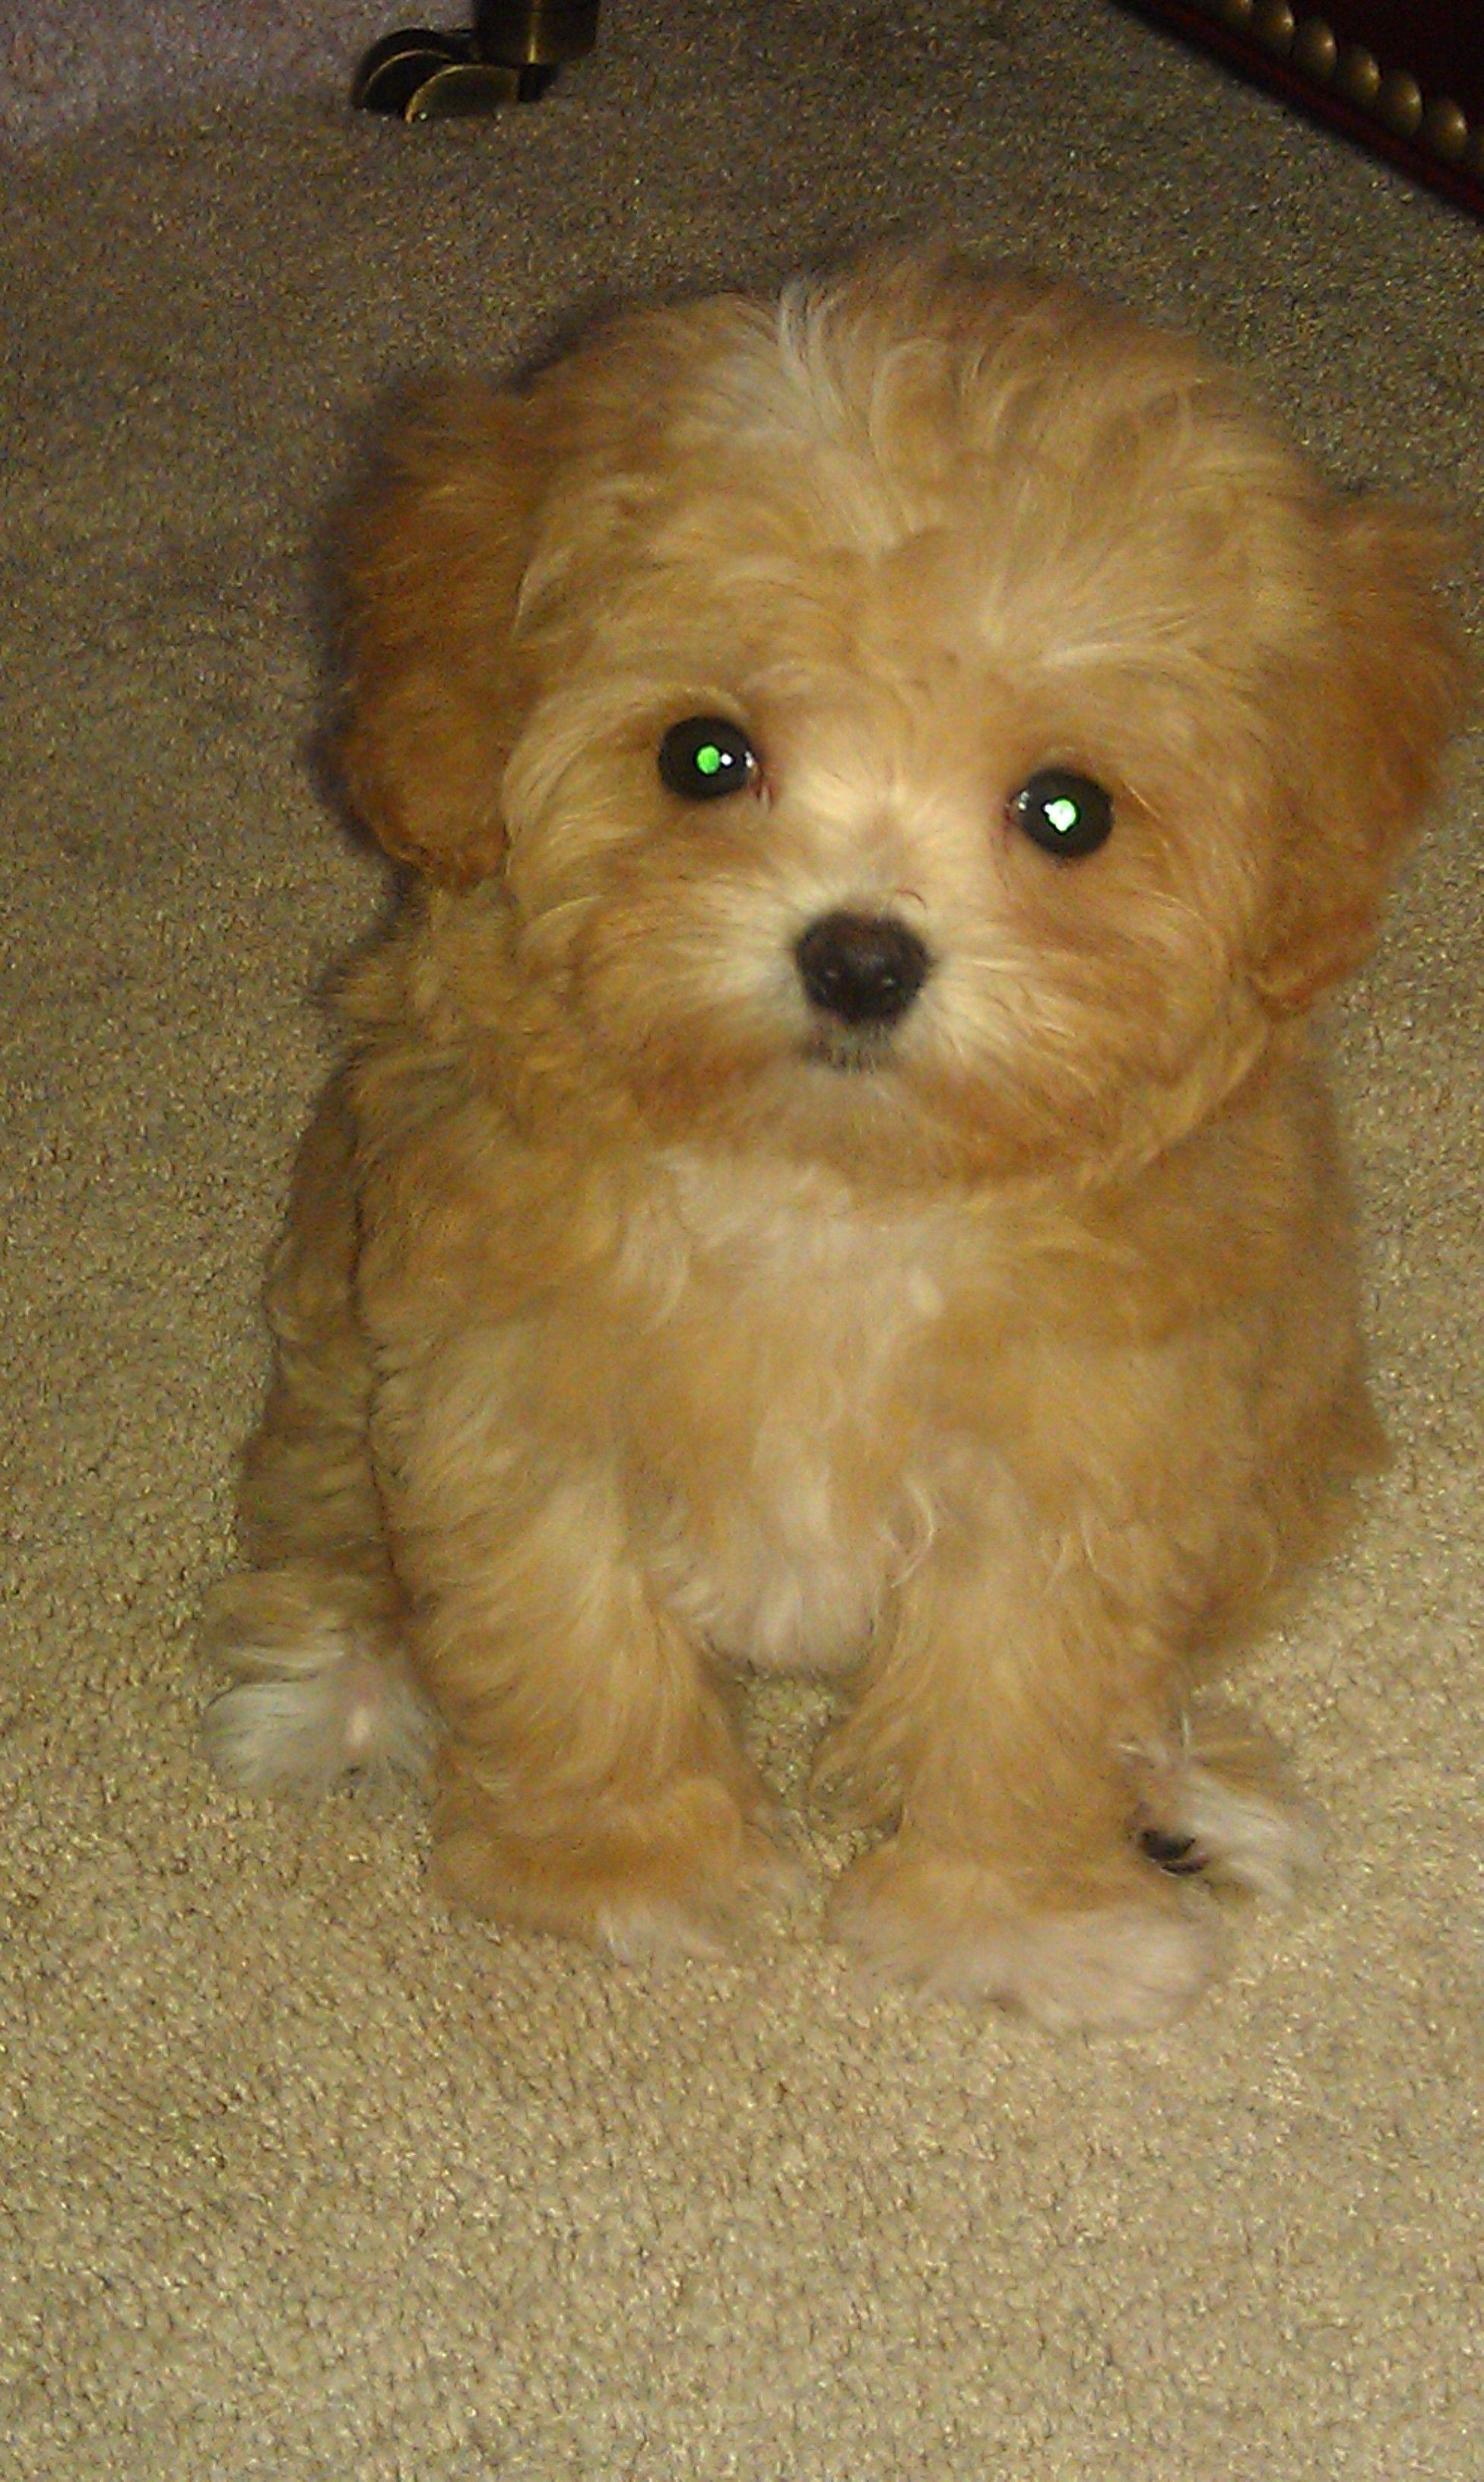 Bella, cutest Maltipoo ever! But that name has got to go!! Ruined ...